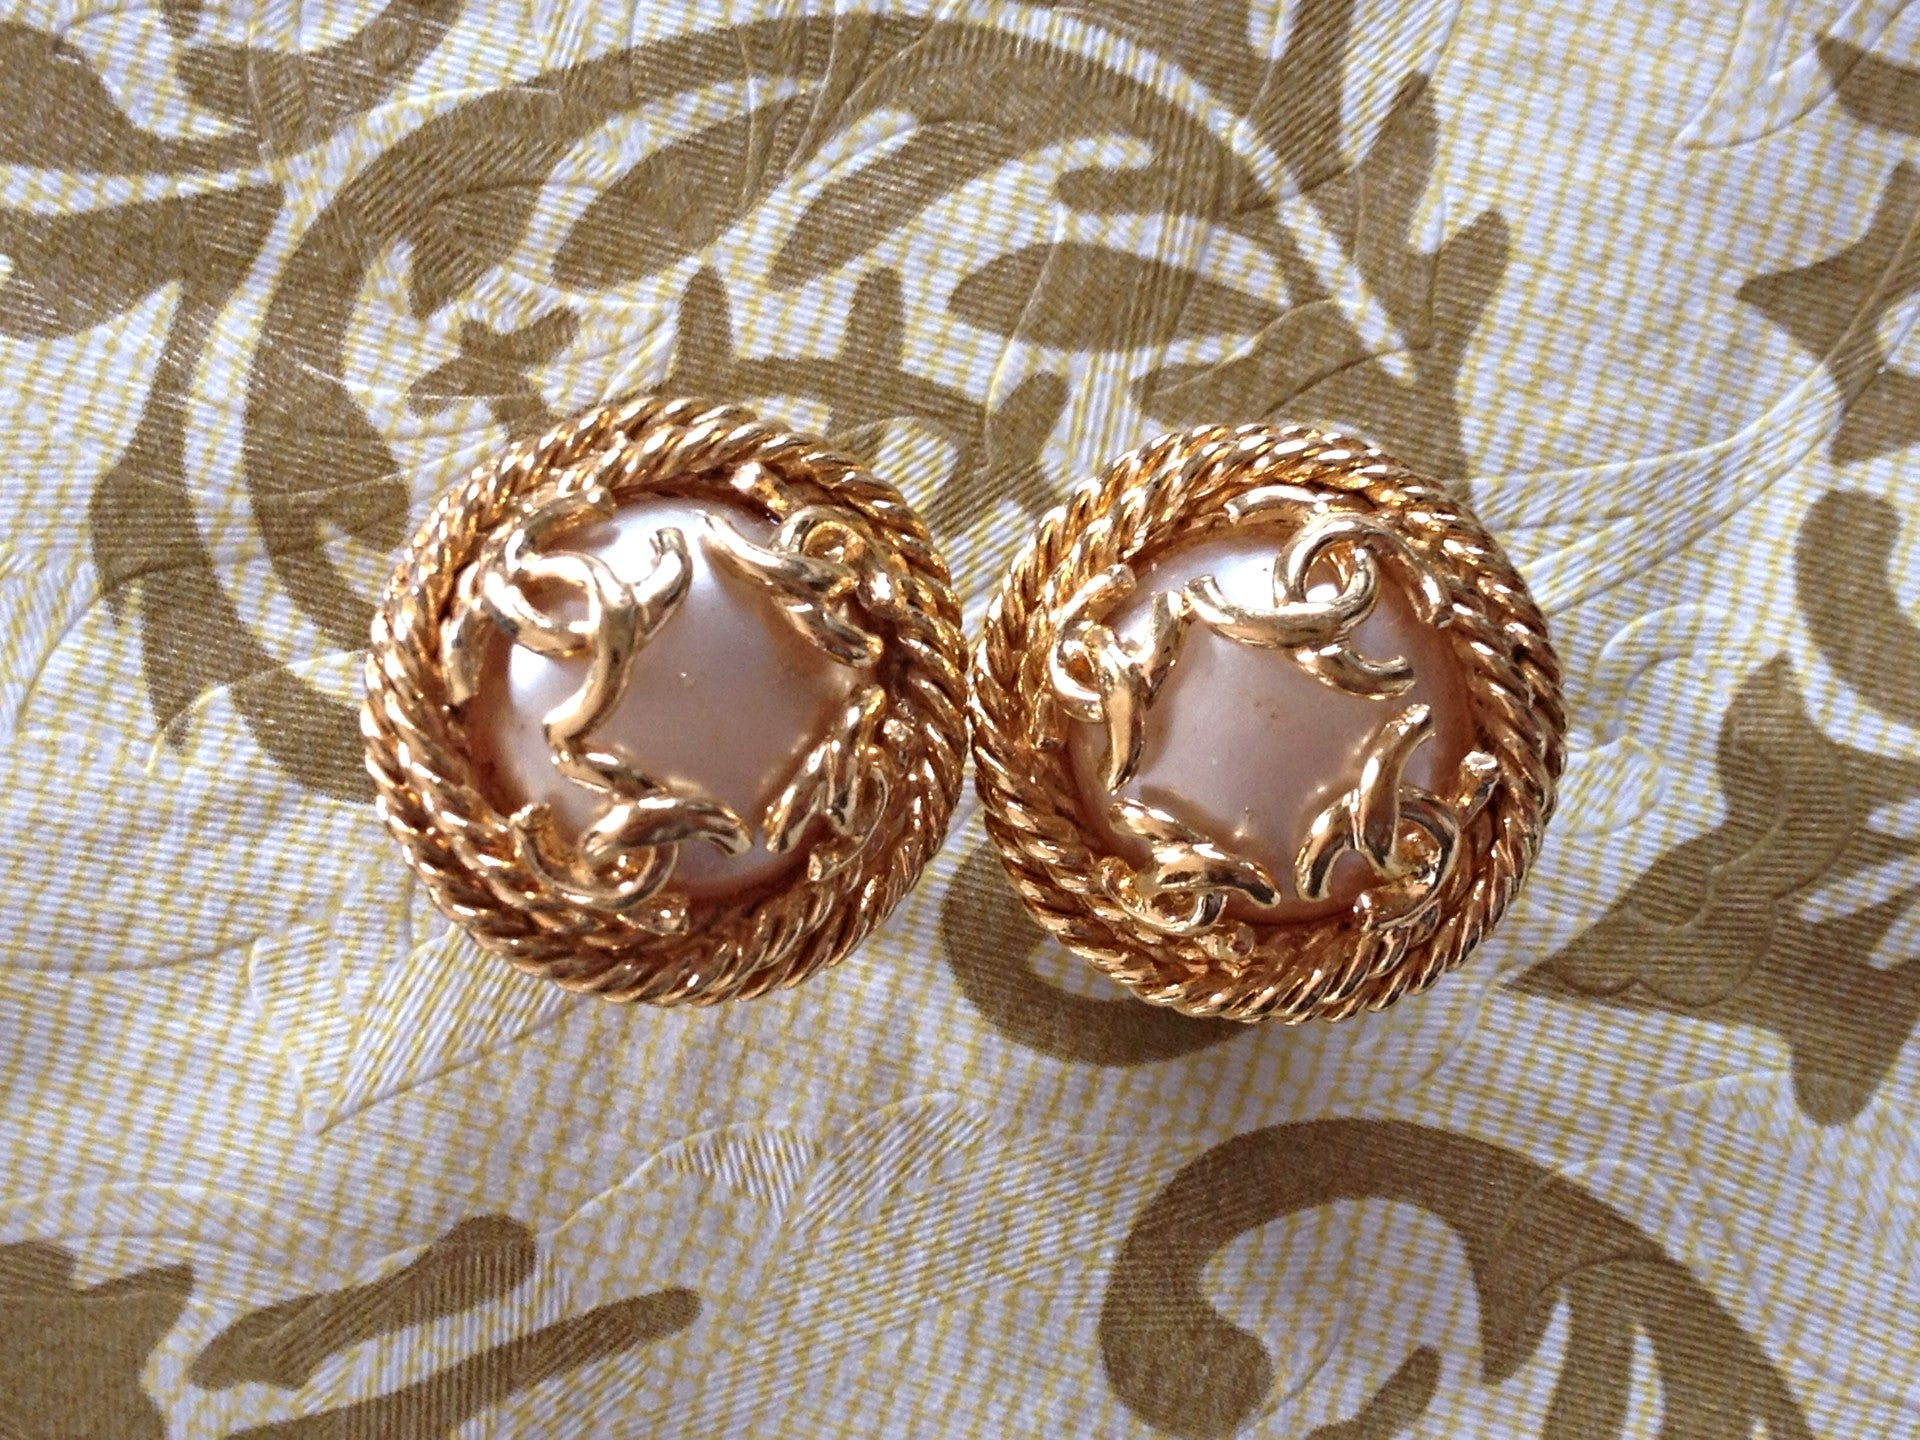 Vintage CHANEL gold tone round earrings with twisted frames, a faux pearl and CC motifs. Great and rare Chanel vintage jewelry gift.